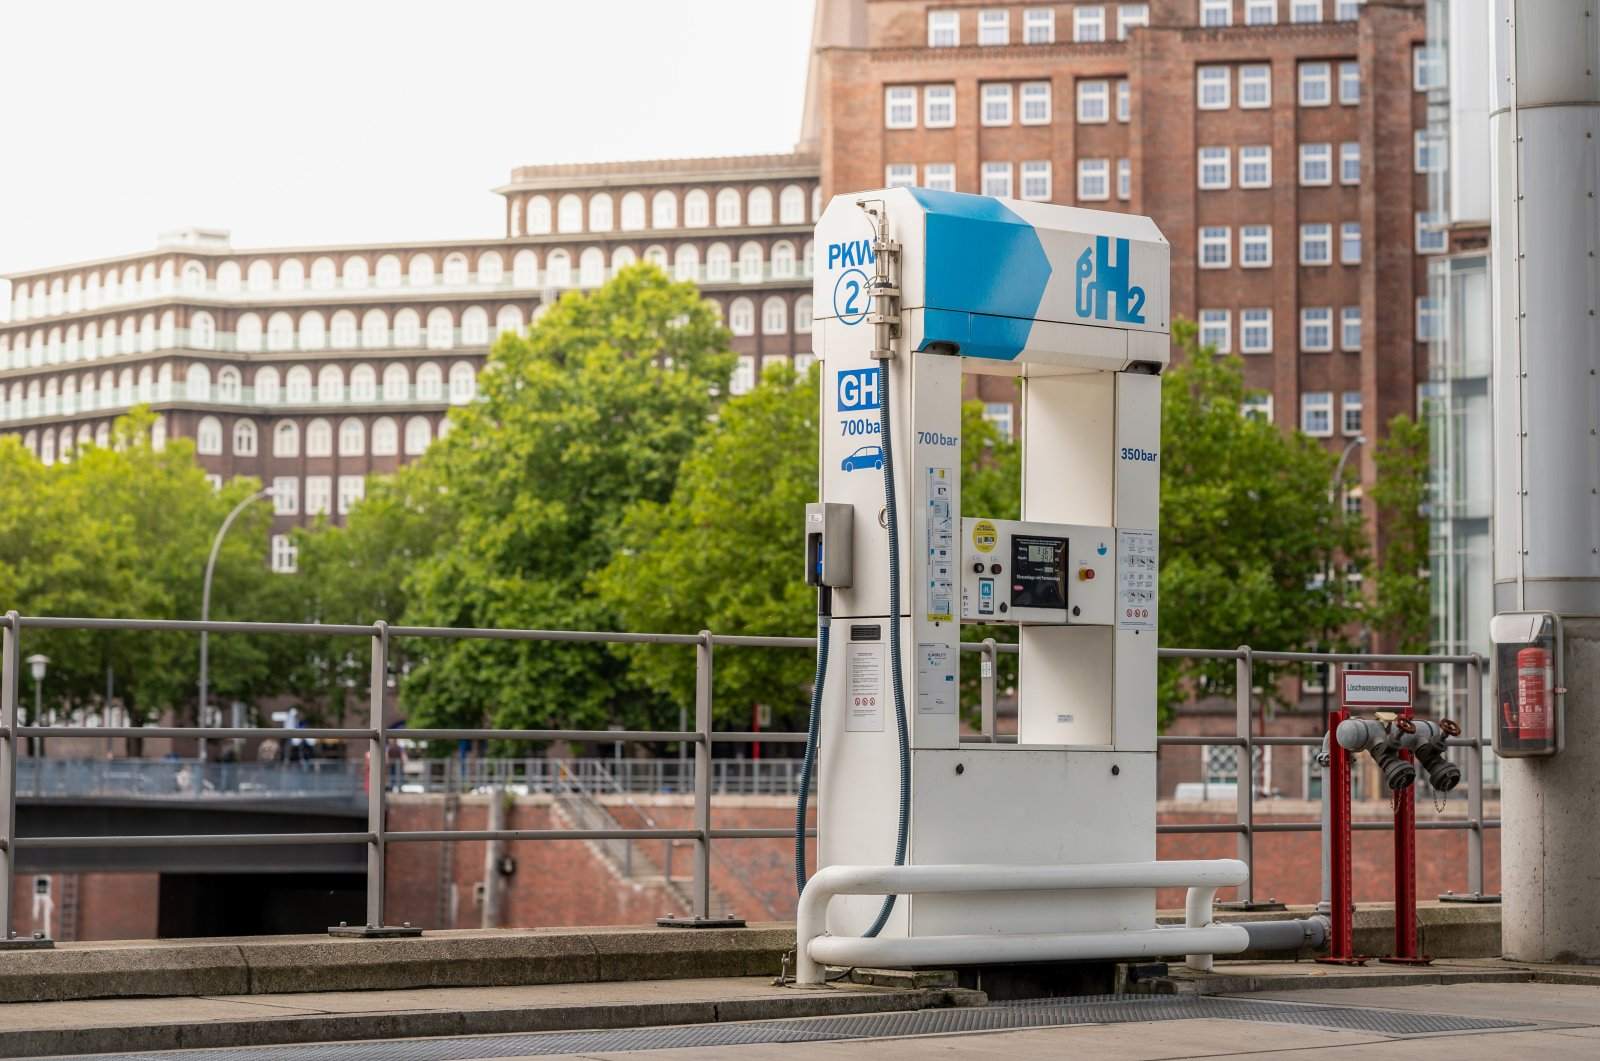 A hydrogen filling station is seen in Hamburg, Germany in this undated photo. (Shutterstock Photo)